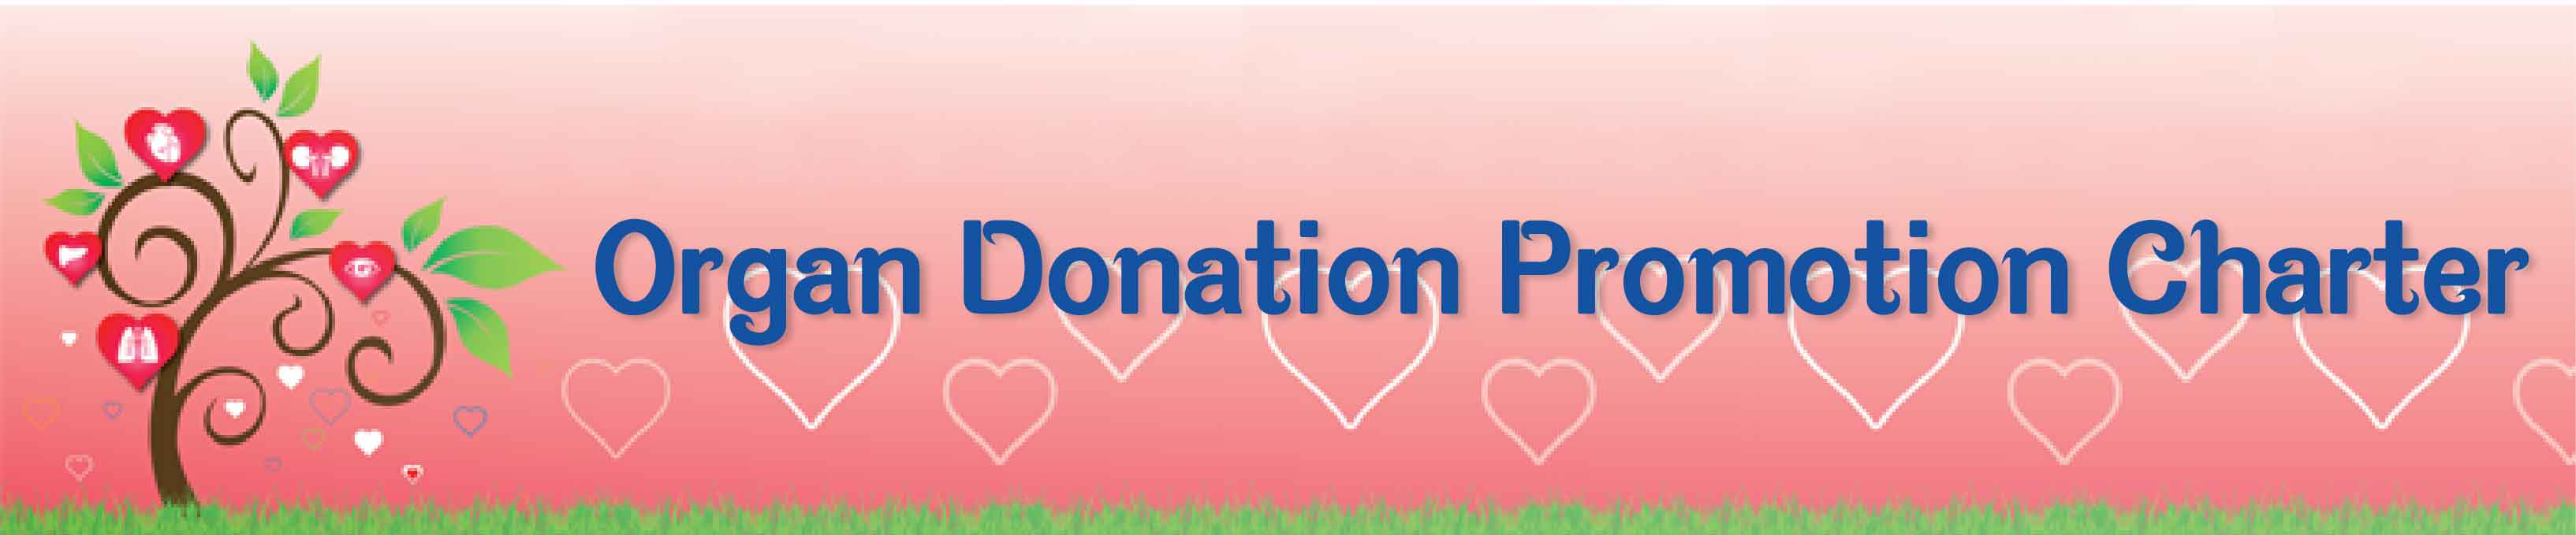 Organ Donation Promotion Charter